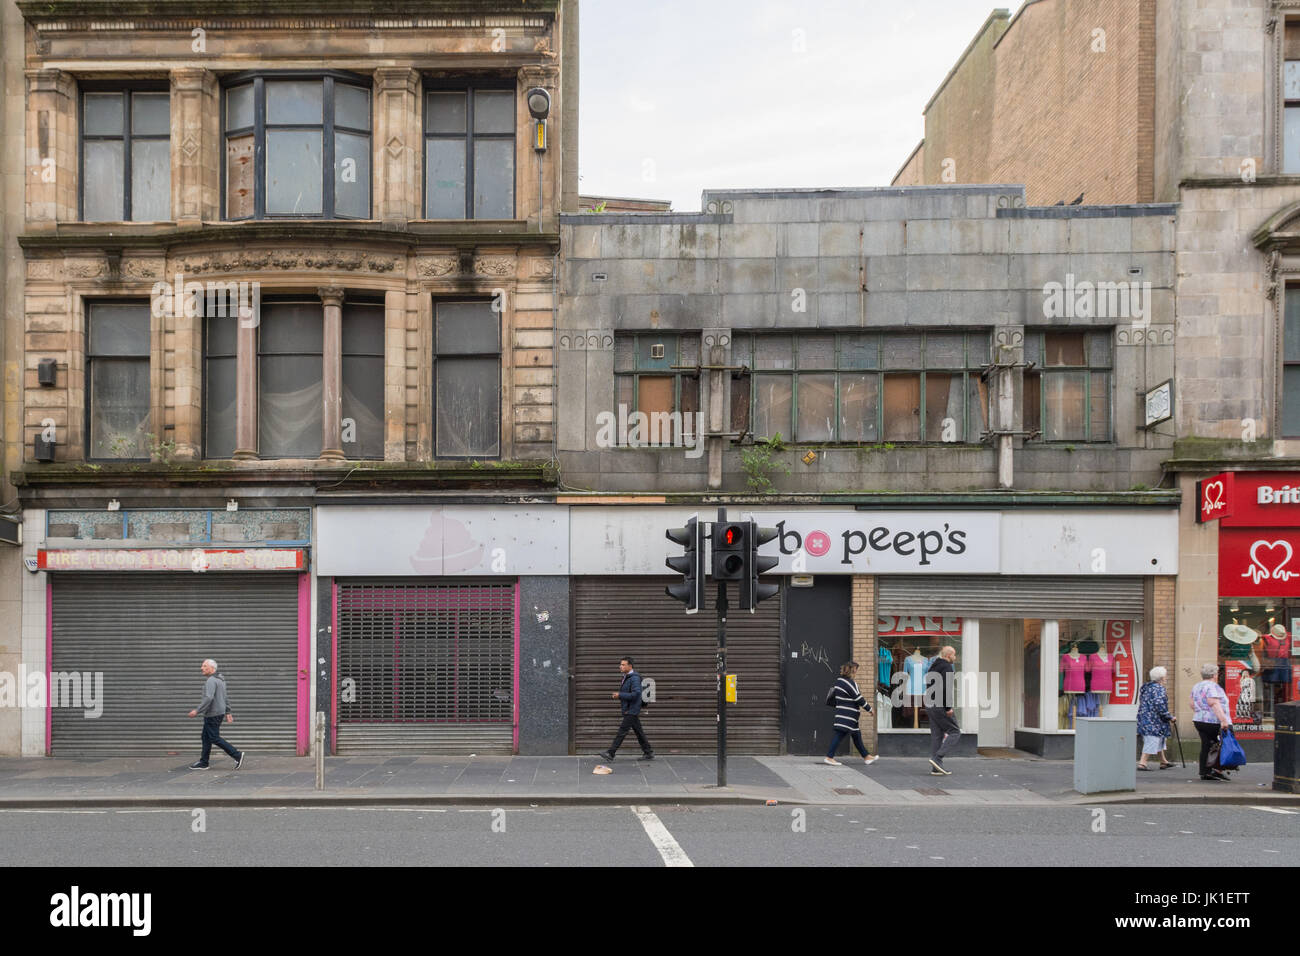 empty shops and commercial properties and rundown buildings on Trongate, Glasgow, Scotland, UK - Stock Image